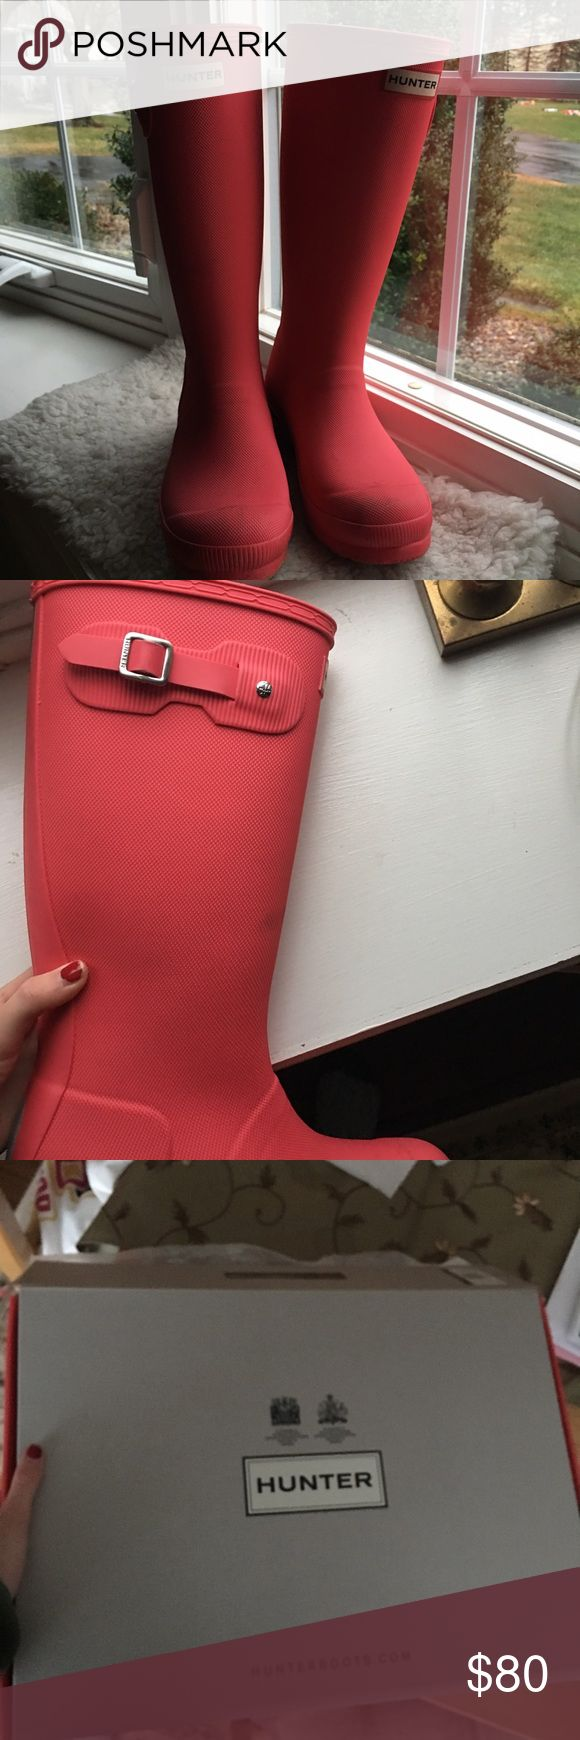 barely worn hot pink hunter boots these are girls hunter boots, come with box, barely worn but are too big for me im a womans 6. eu 37 which is a womans 7 Hunter Boots Shoes Winter & Rain Boots